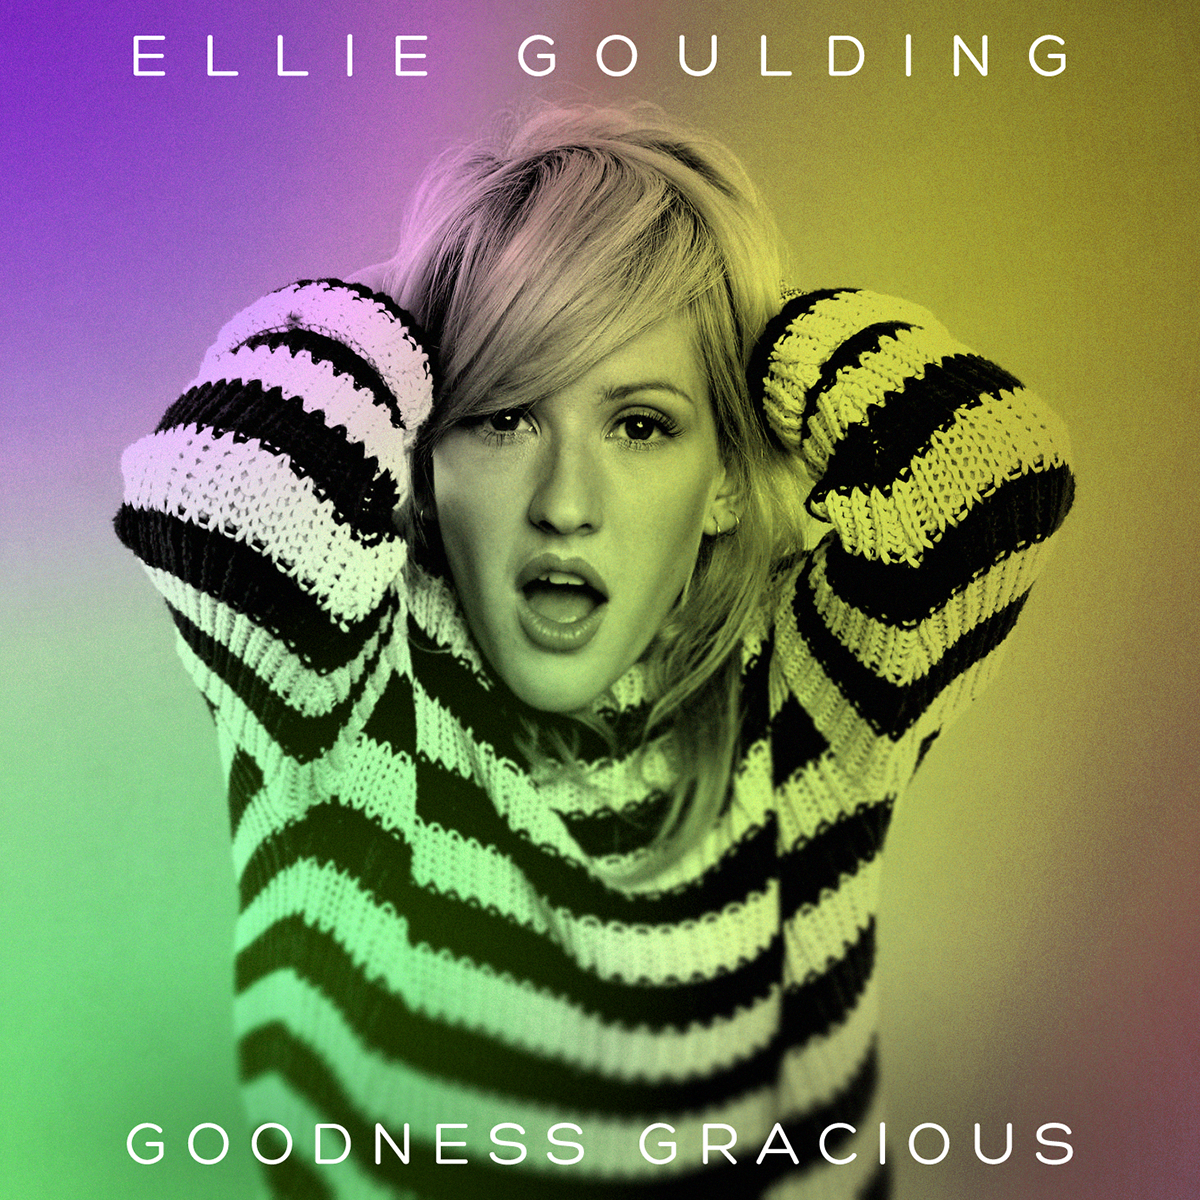 Ellie-Goulding-Goodness-Gracious-made-by-RCMusic